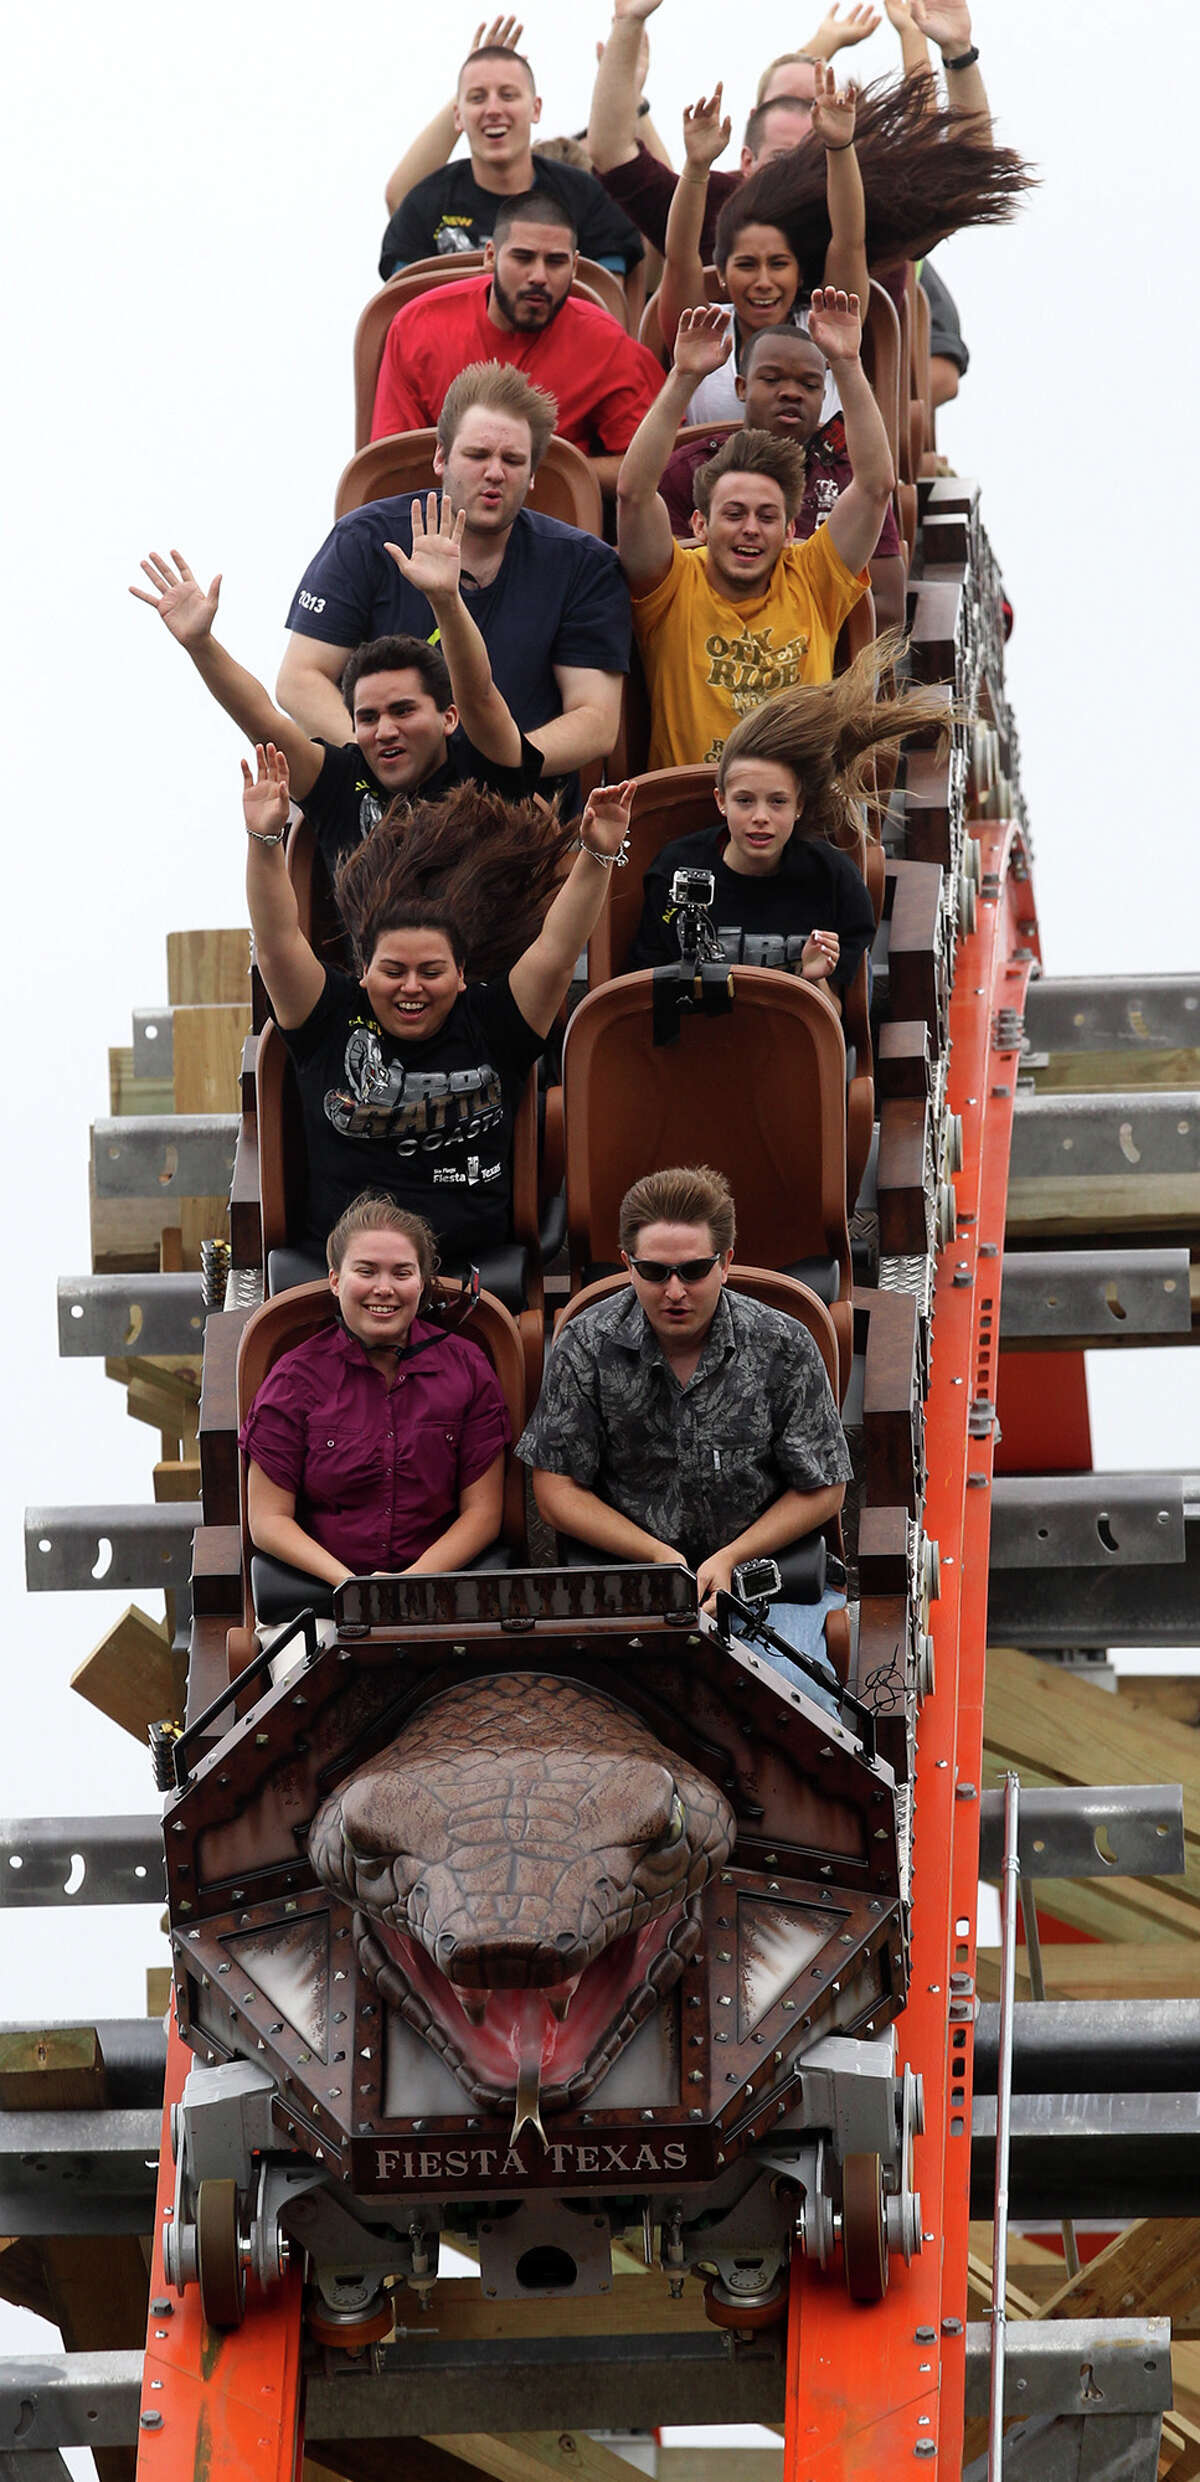 Iron Rattler People enjoy a drop on the new Iron Rattler roller coaster Wednesday May 15, 2013 during a media day event to introduce the ride at Six Flags Fiesta Texas.